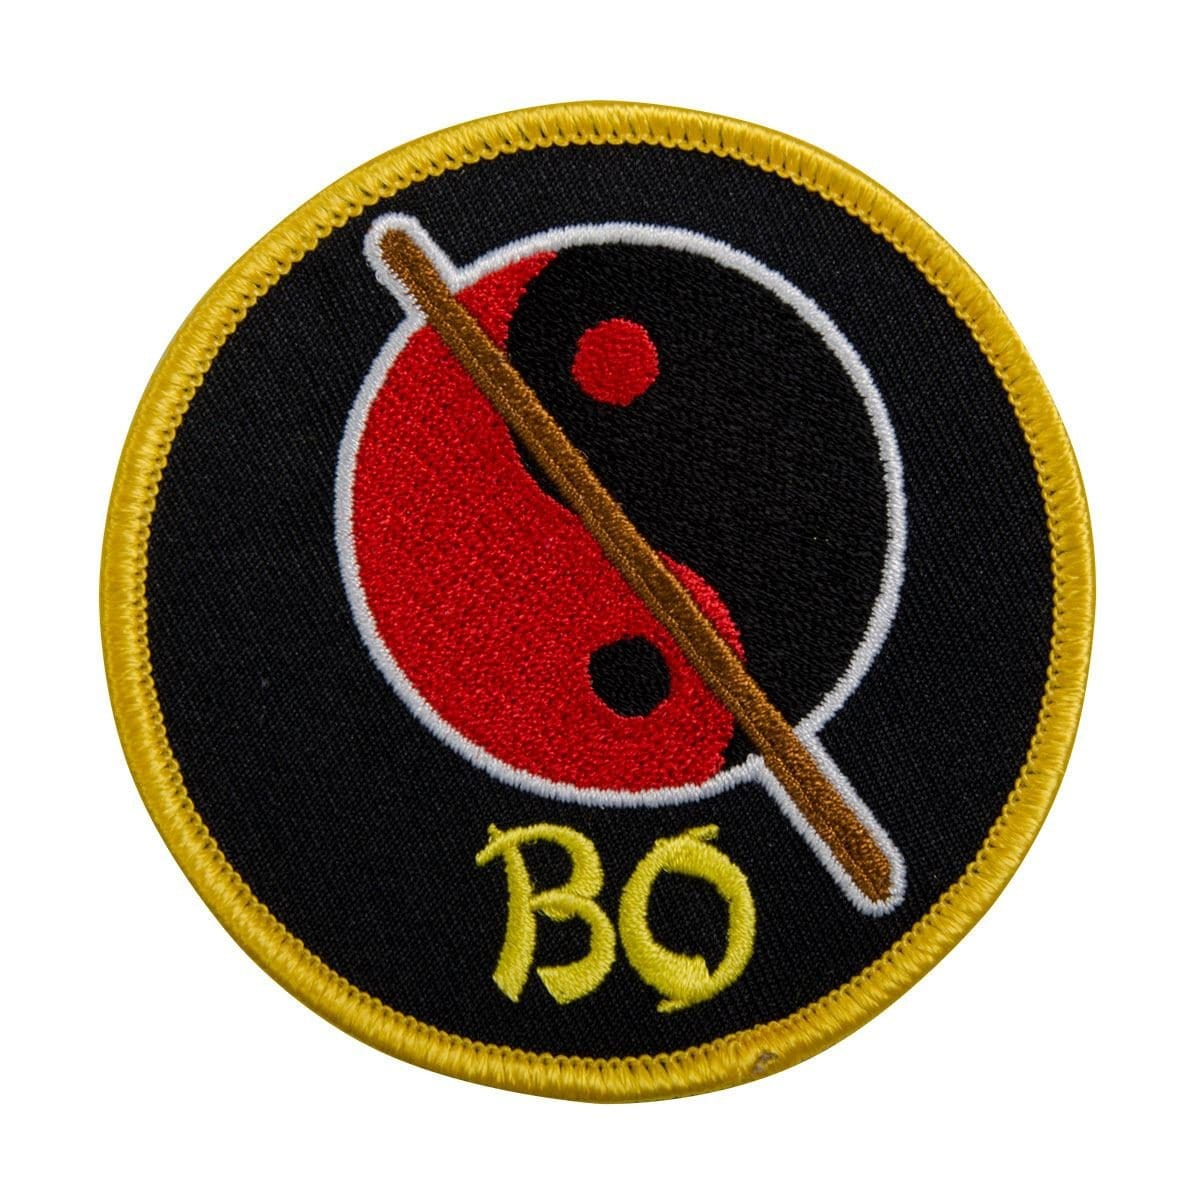 Bo-Yin Yang Patch c0821-bo - BlackBeltShop